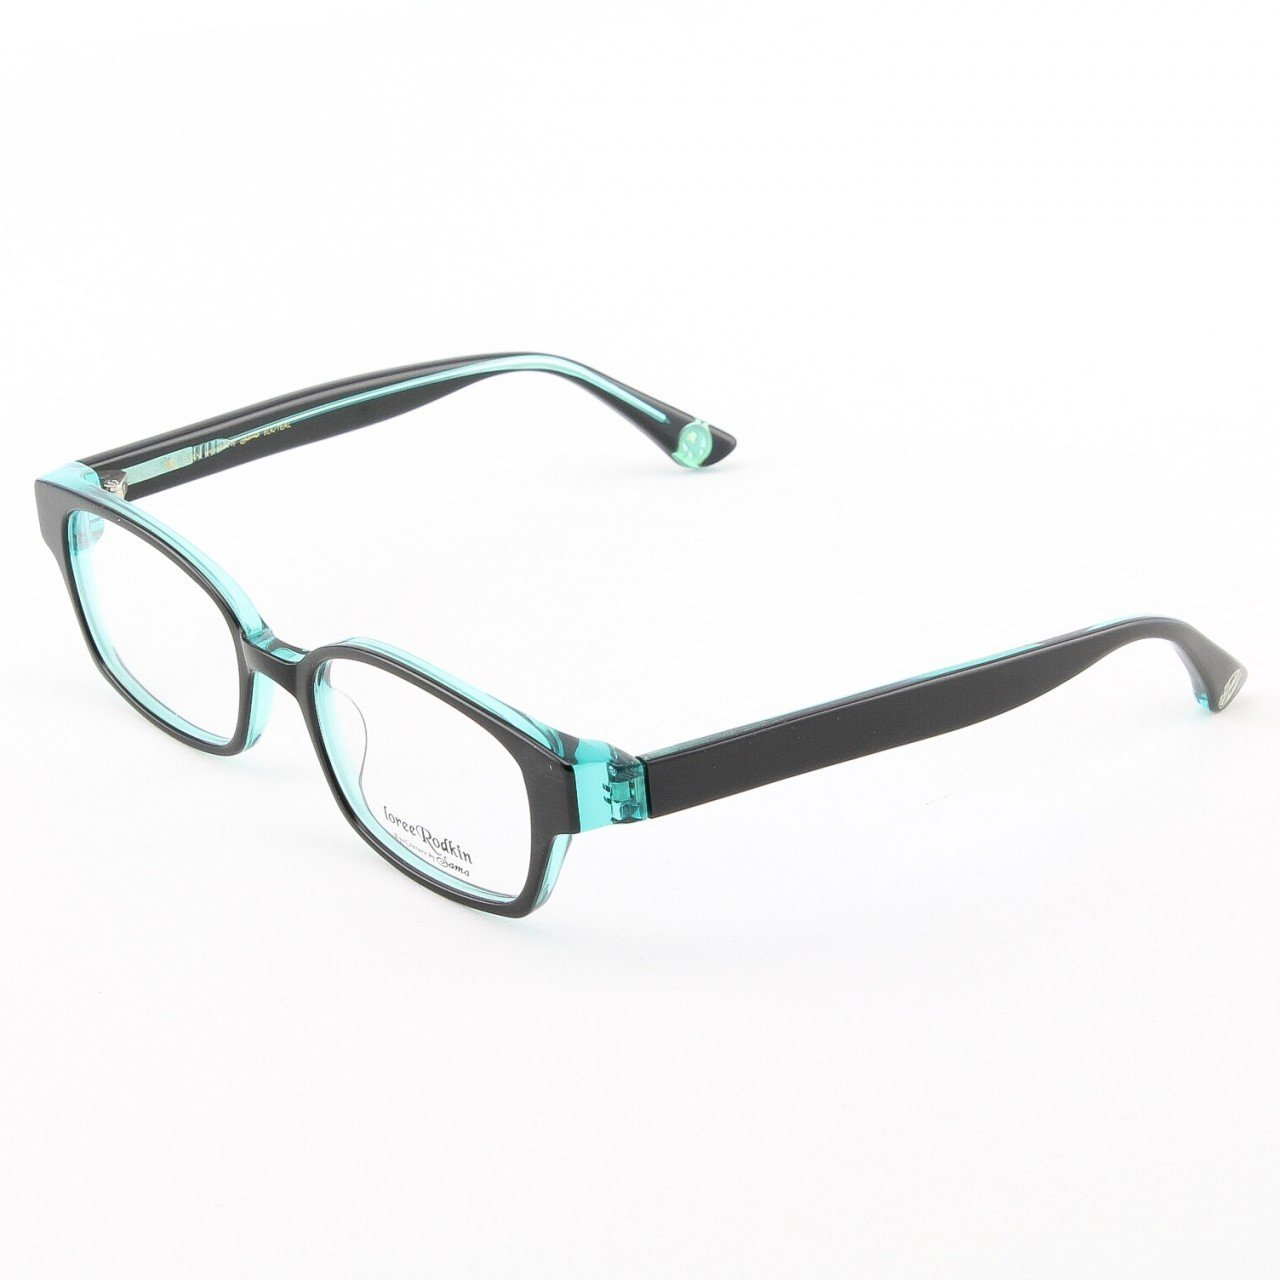 Loree Rodkin Evan Eyeglasses by Sama Col. Black and Teal with Clear Lenses